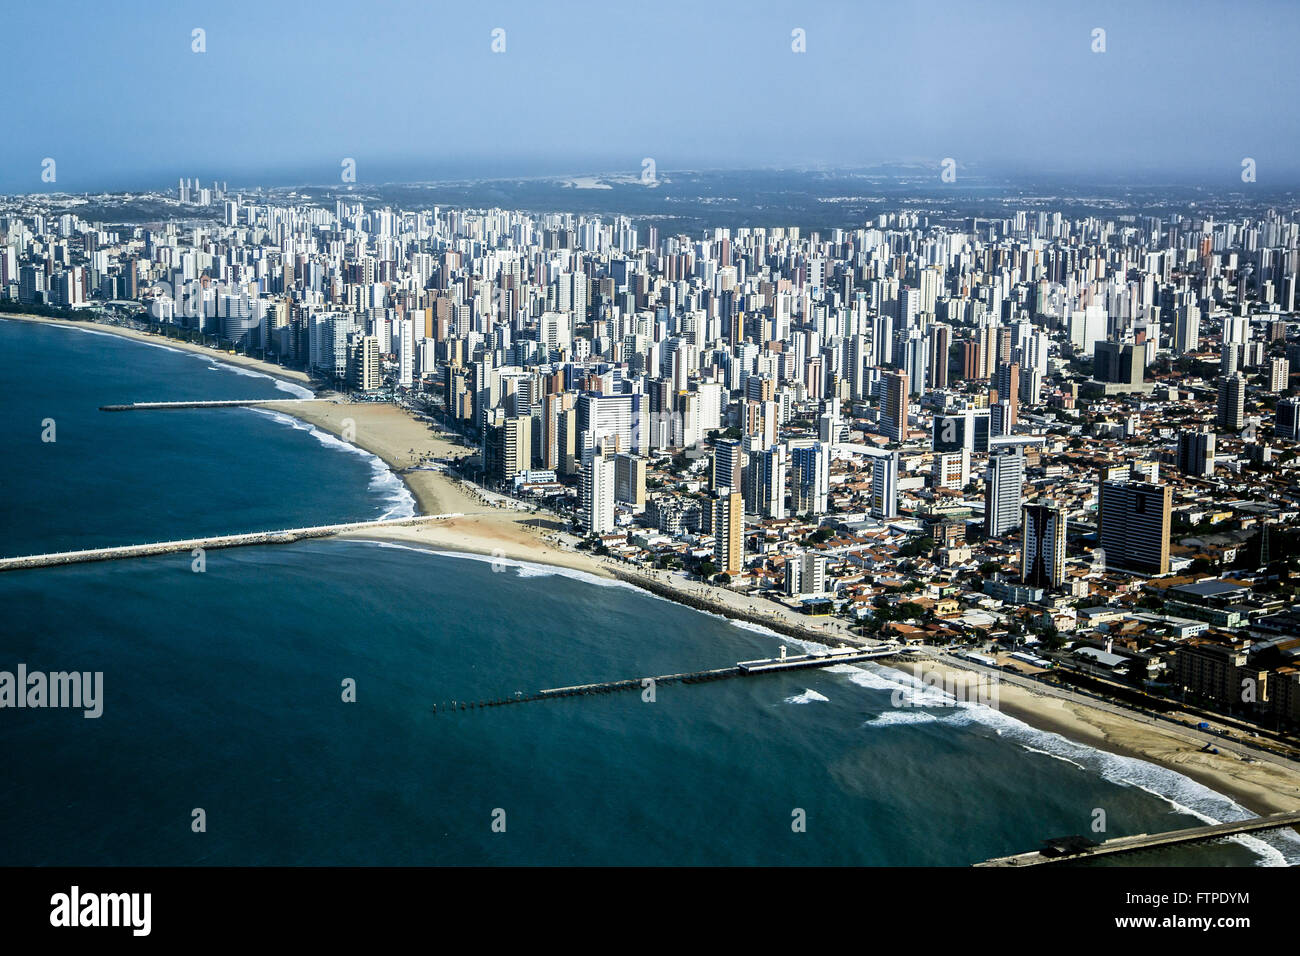 Aerial view of artificial fill and seat of Iracema Beach - Stock Image